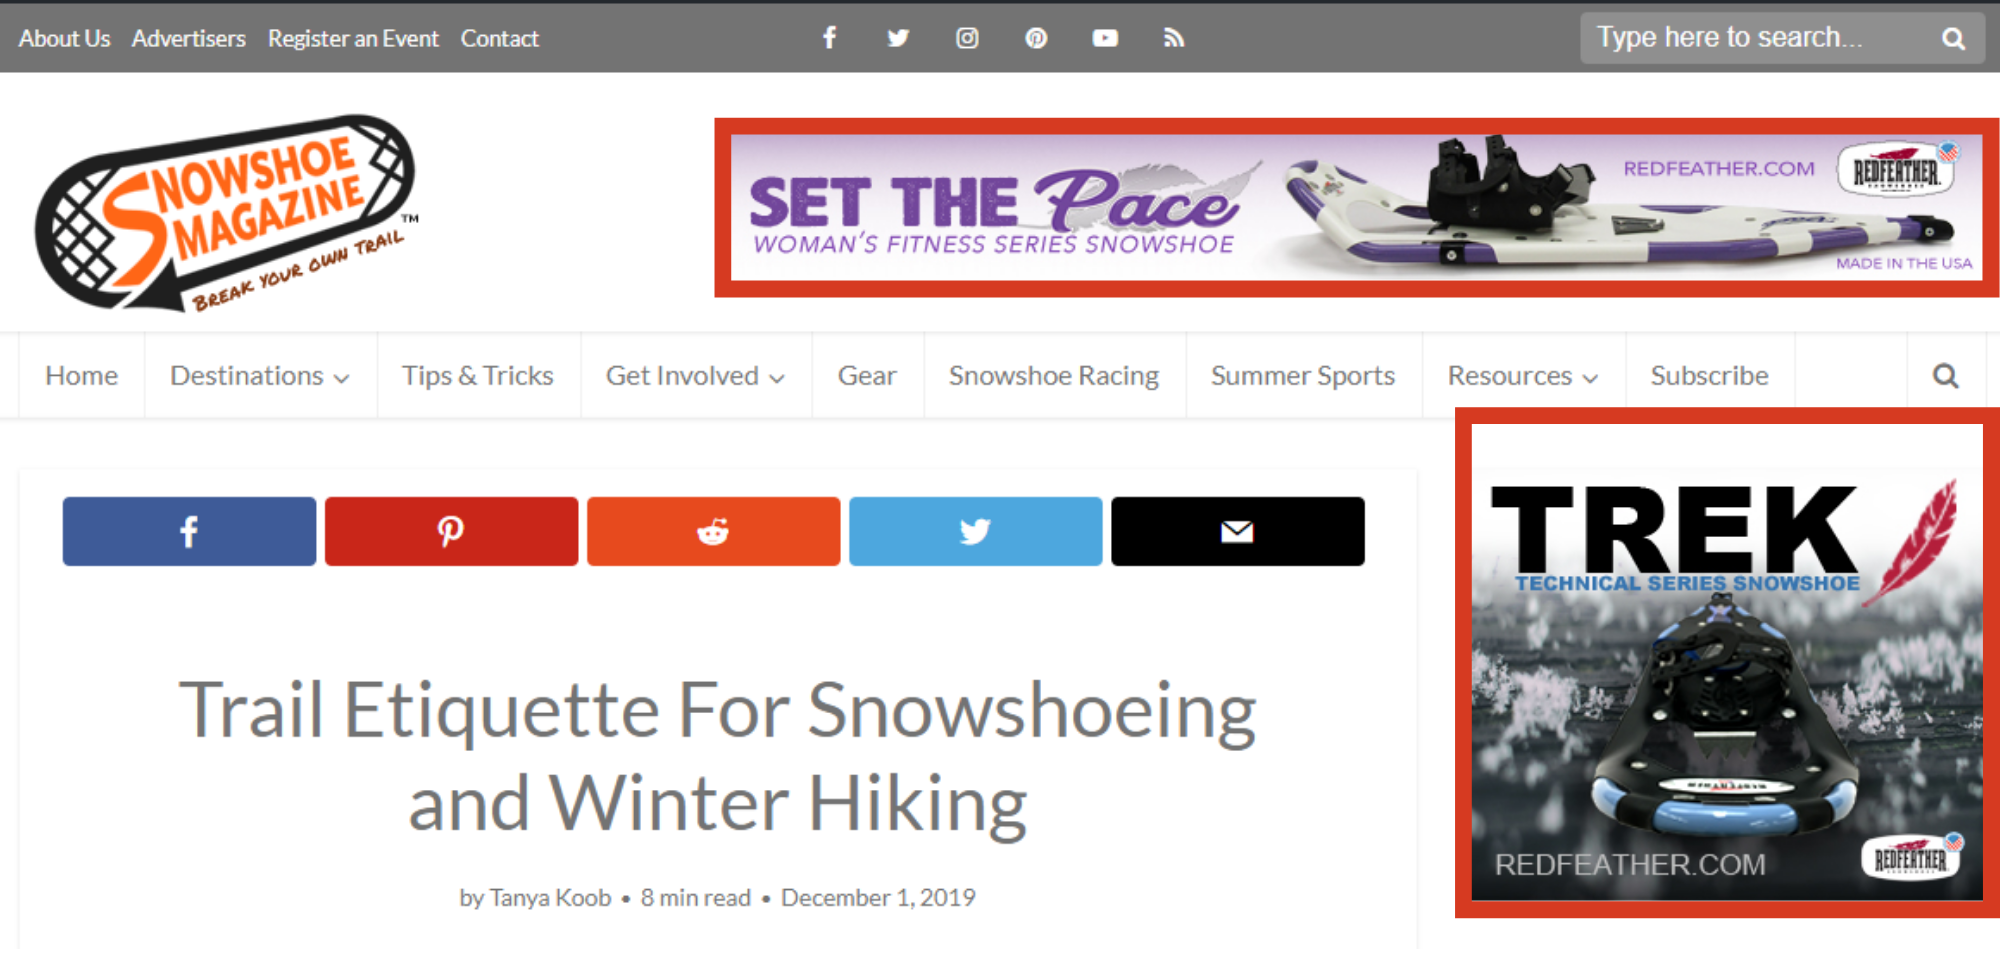 Snowshoe Magazine advertising: example of display ads on post page